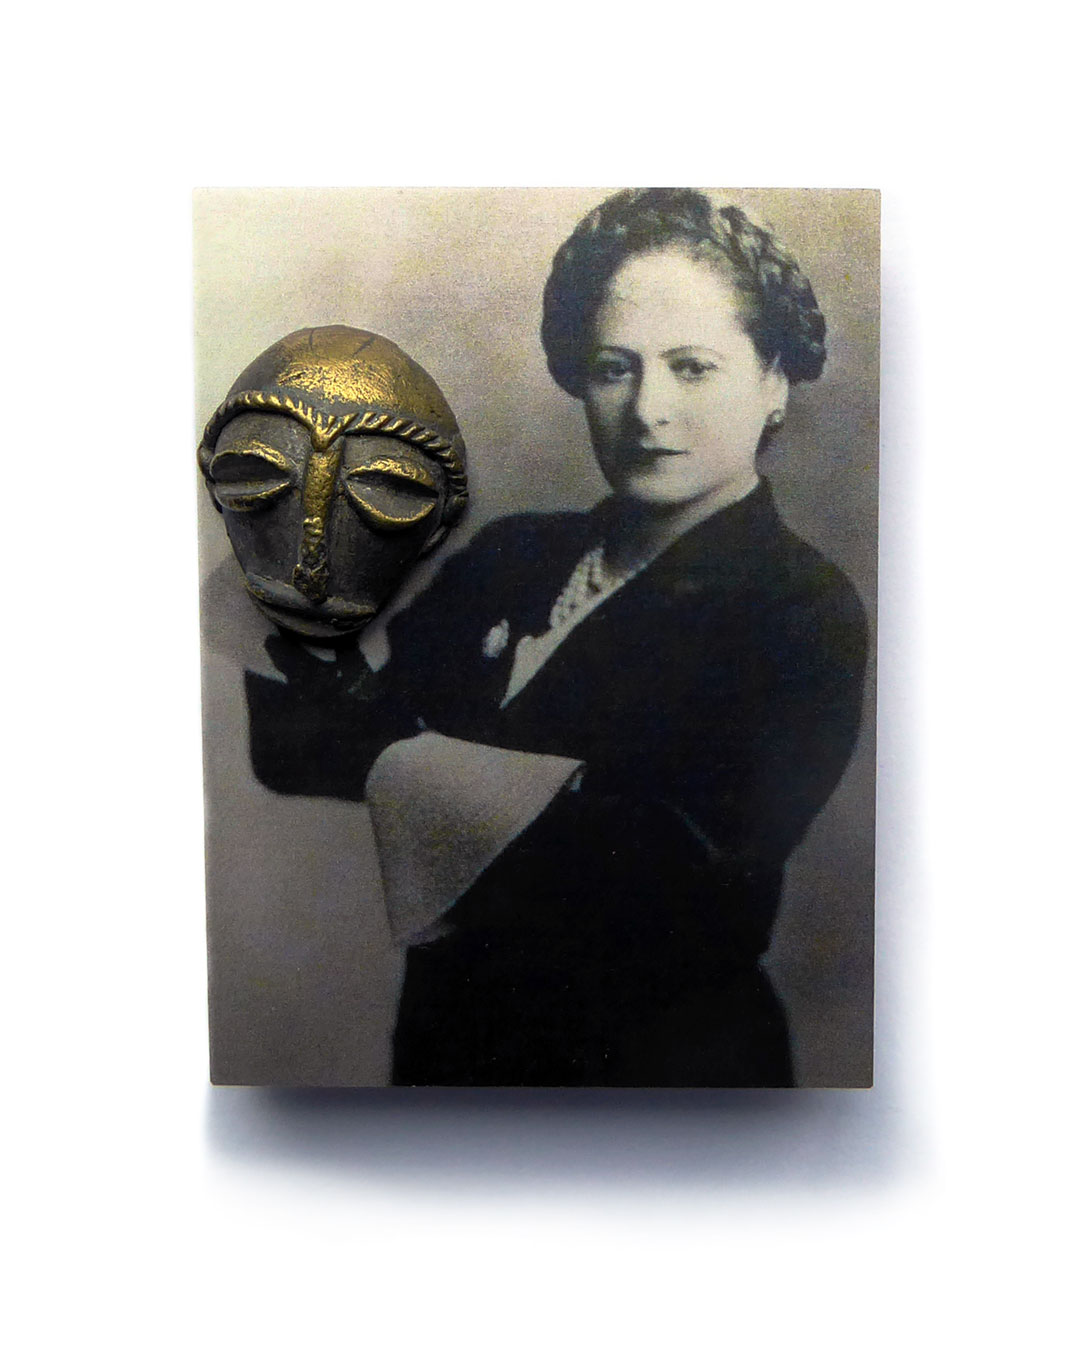 Herman Hermsen, The Mask, 2018, brooch; print on aluminium, wood, brass, 79 x 59 x 24 mm, €425